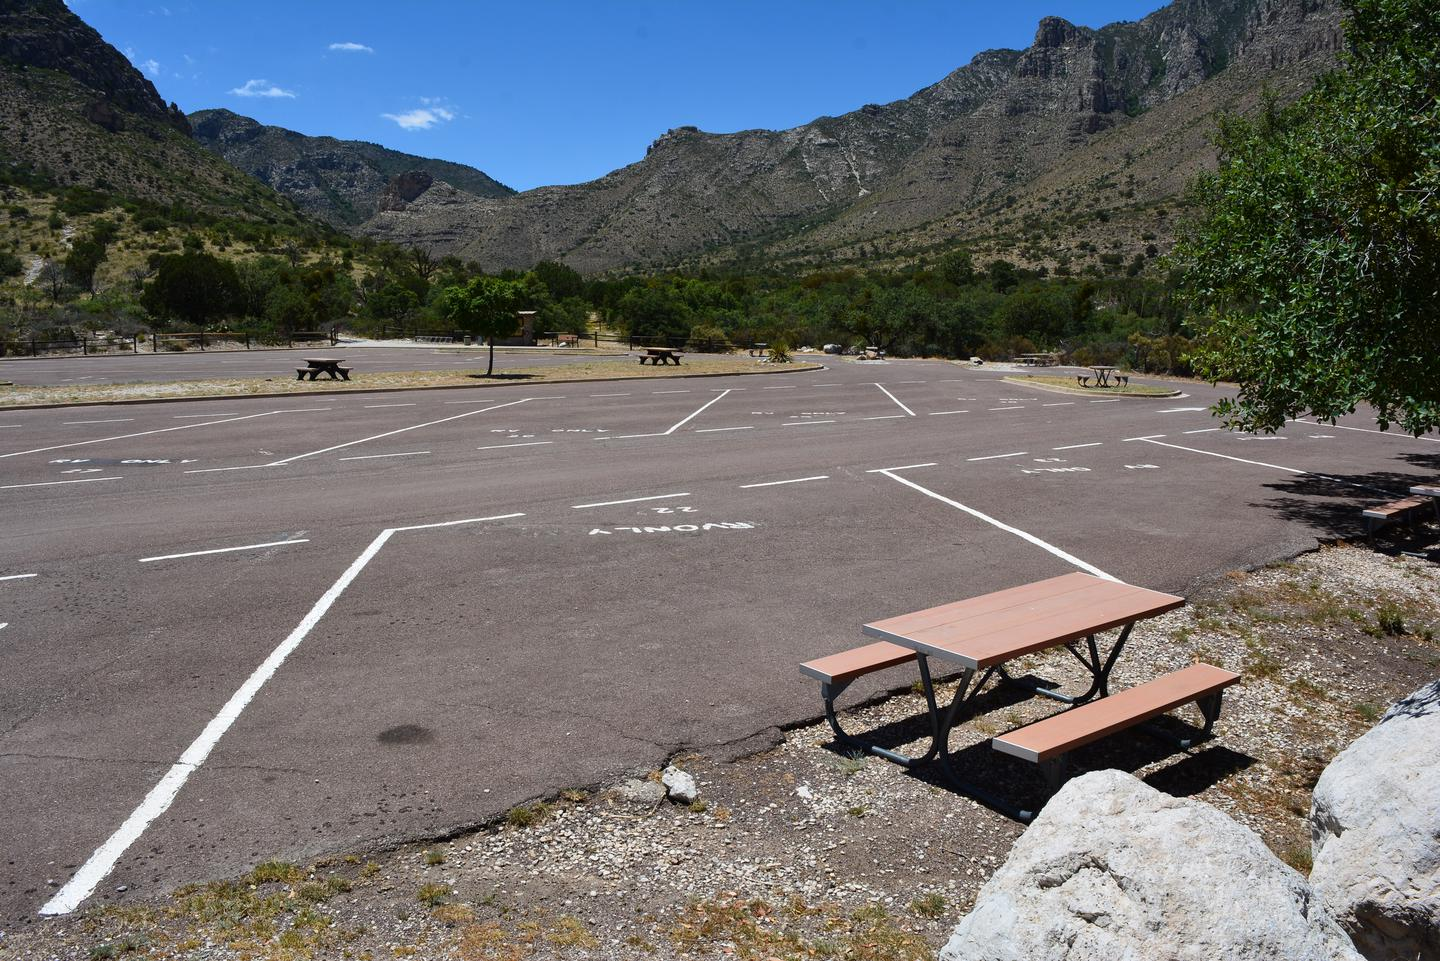 RV site 22 shown from the back edge of the site.  The picnic table is off the edge of the paved space.  Views of the Pine Spring Canyon visible across other campsites.RV campsite number 22 with views of the Pine Spring Canyon and surrounding mountains.